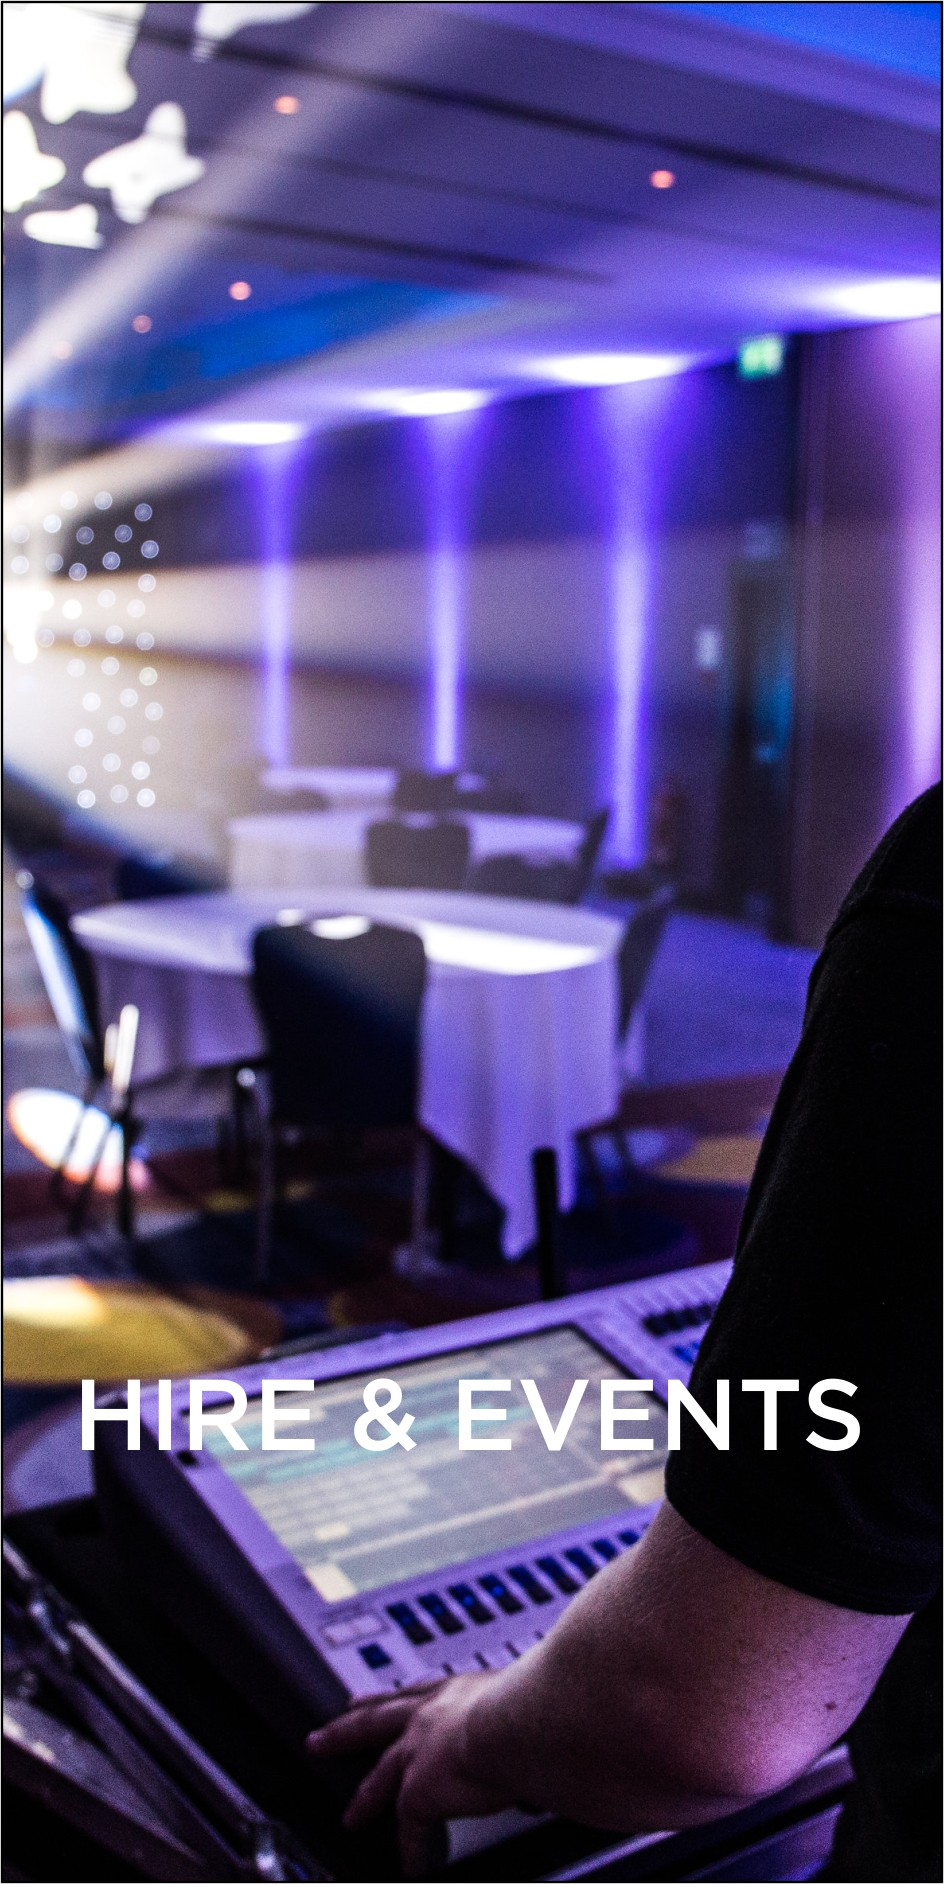 Hire & Events